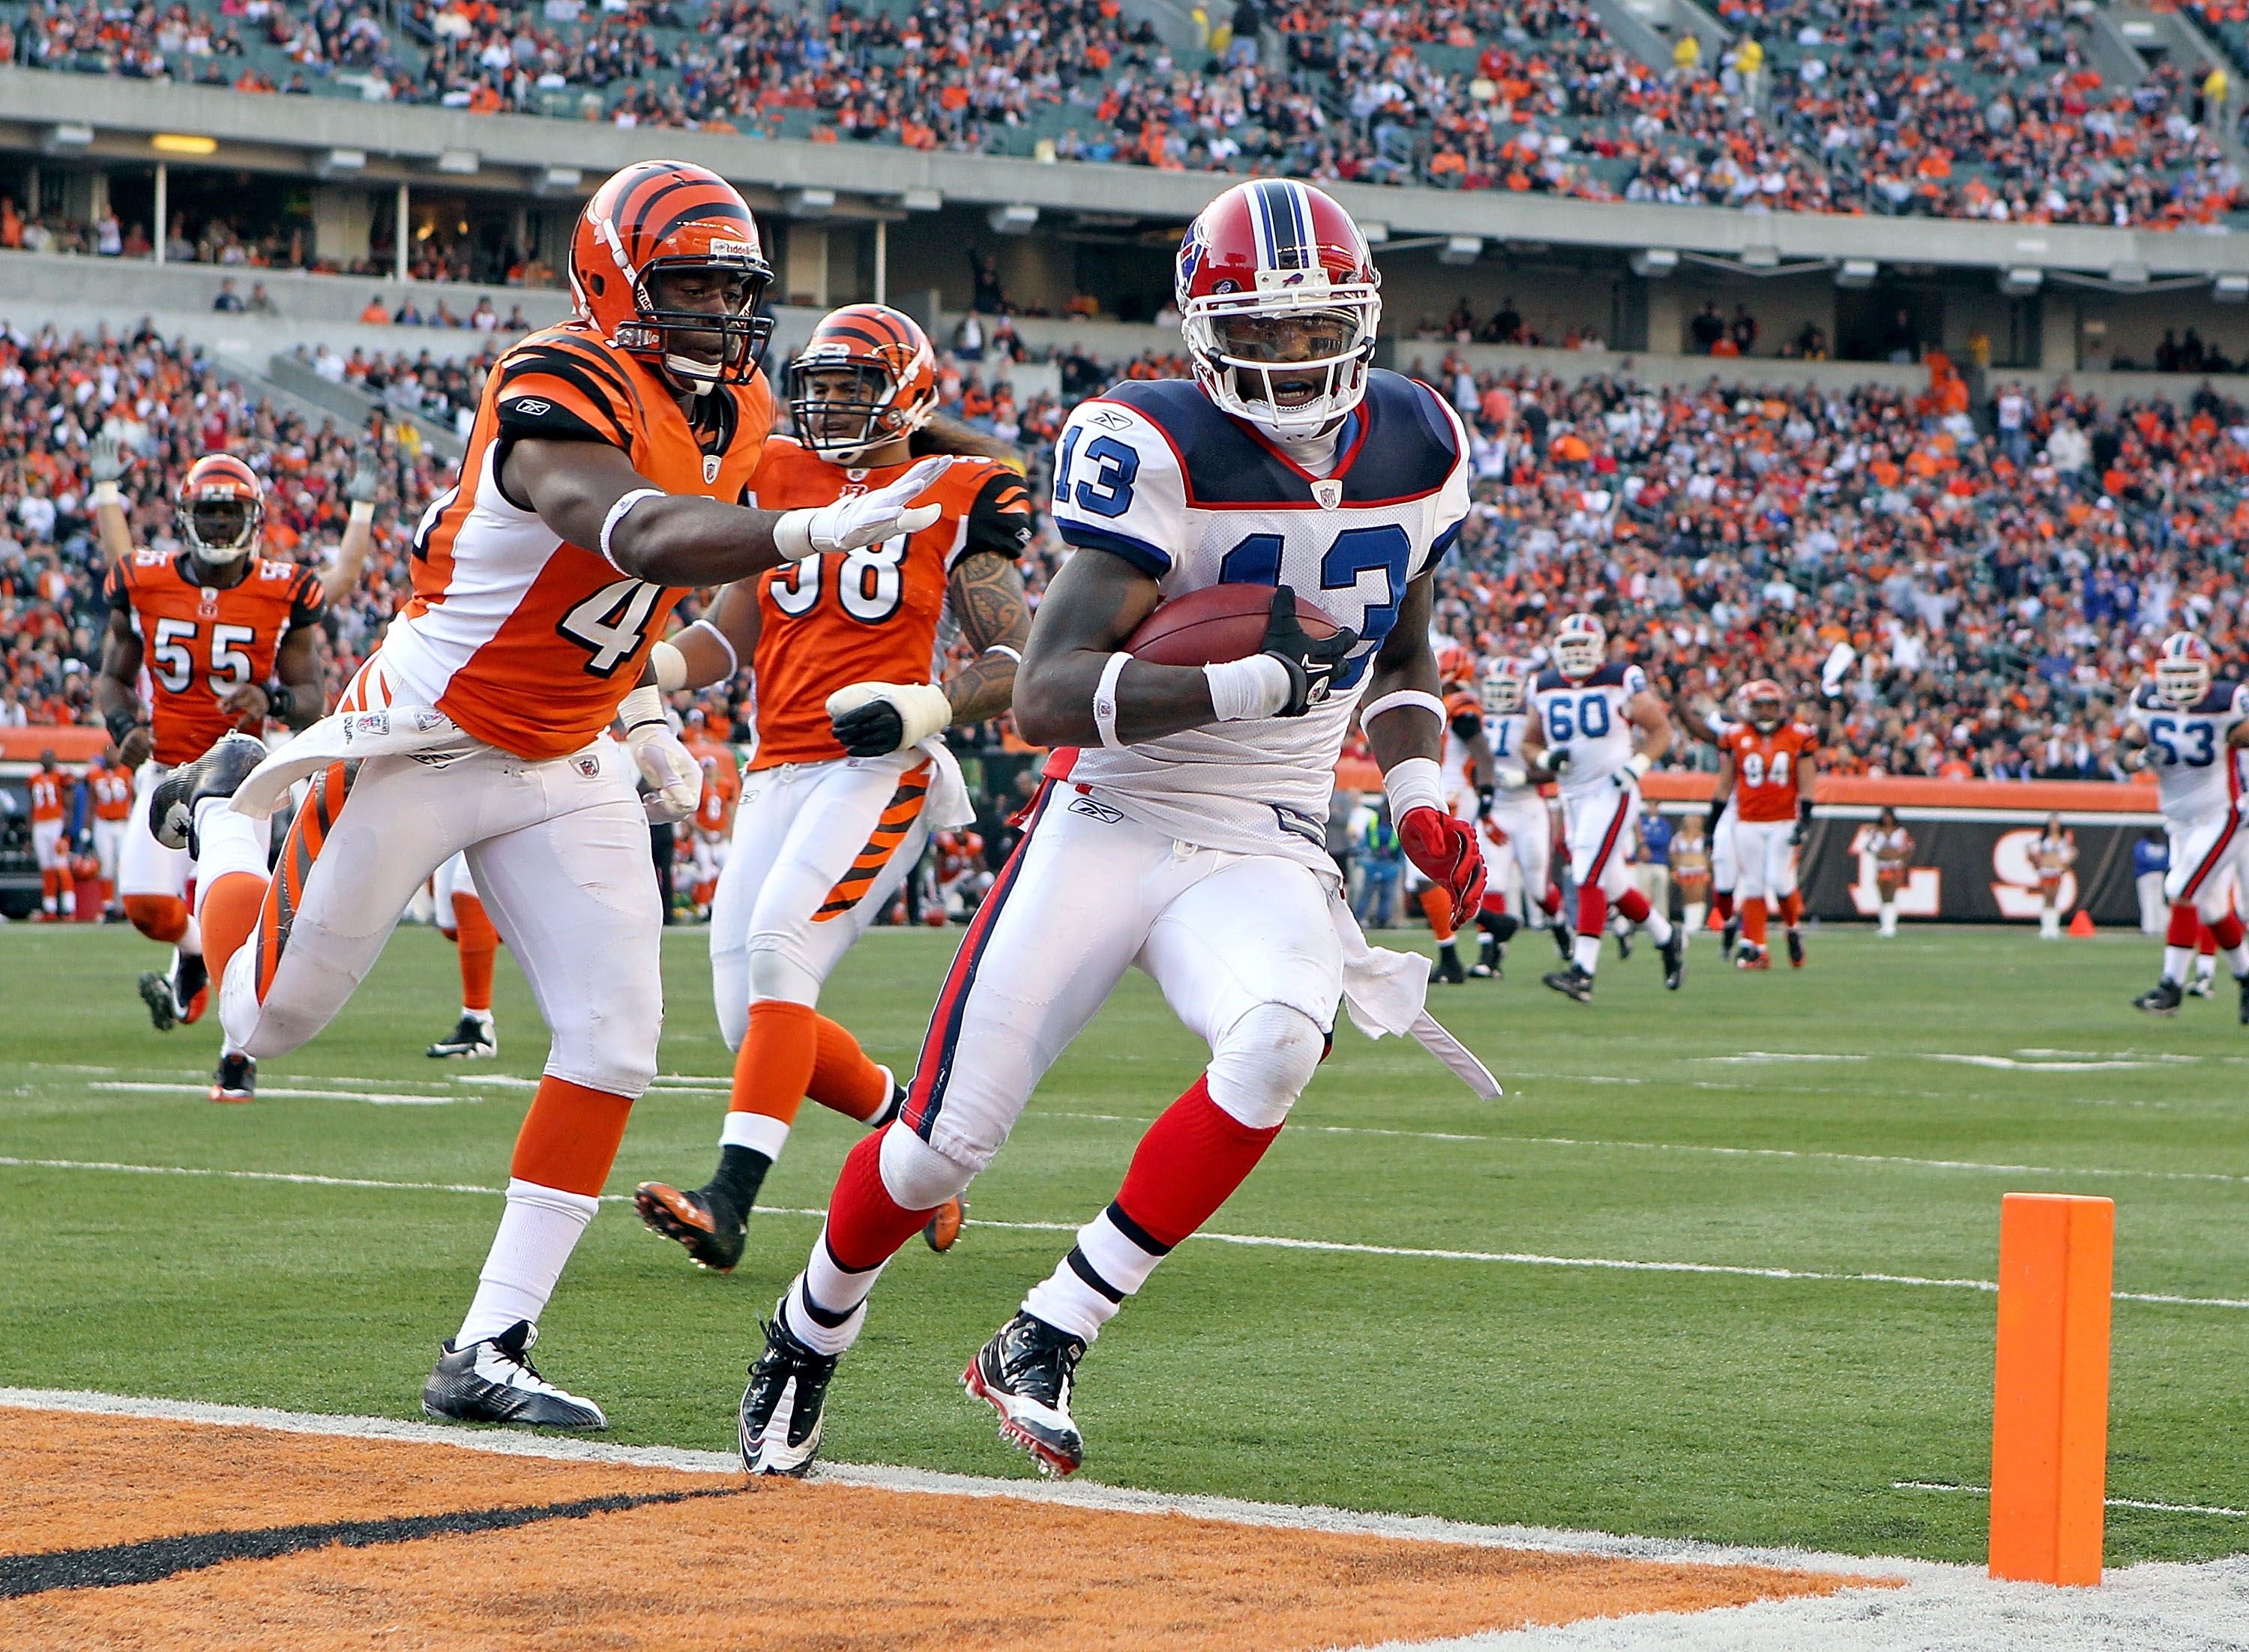 CINCINNATI - NOVEMBER 21:  Steve Johnson #13 of the Buffalo Bills runs for a touchdown during NFL game against the Cincinnati Bengals at Paul Brown Stadium on November 21, 2010 in Cincinnati, Ohio. The Bills won 49-21.  (Photo by Andy Lyons/Getty Images)